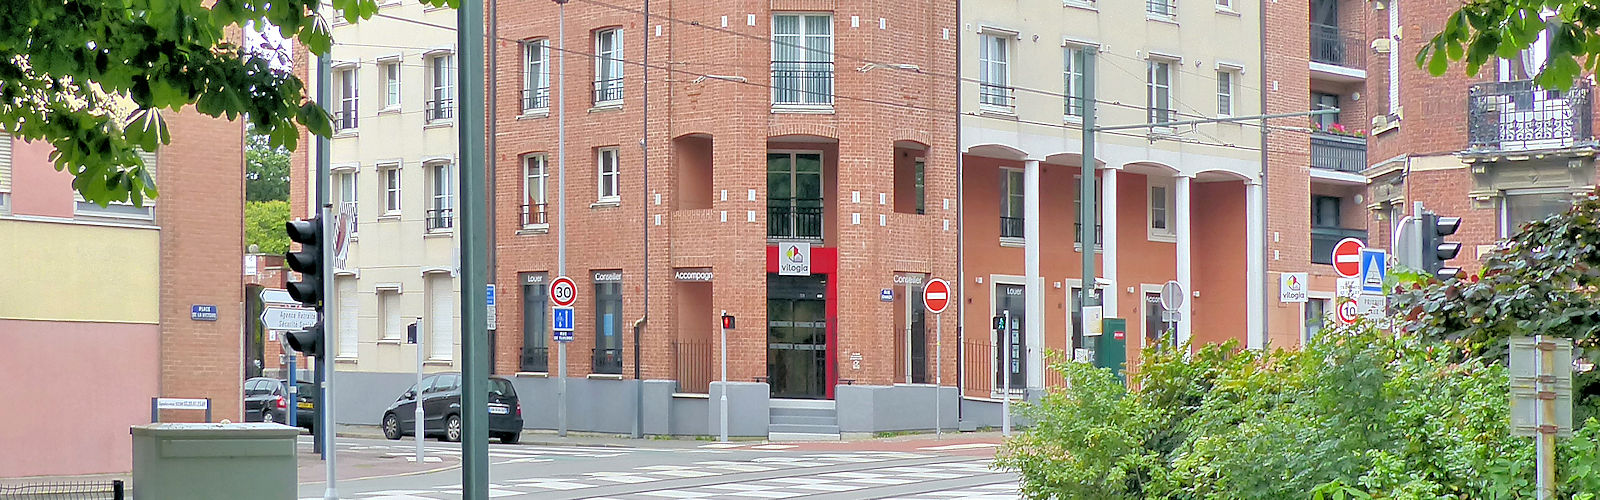 Vilogia Office HLM Tourcoing - Rue Chanzy